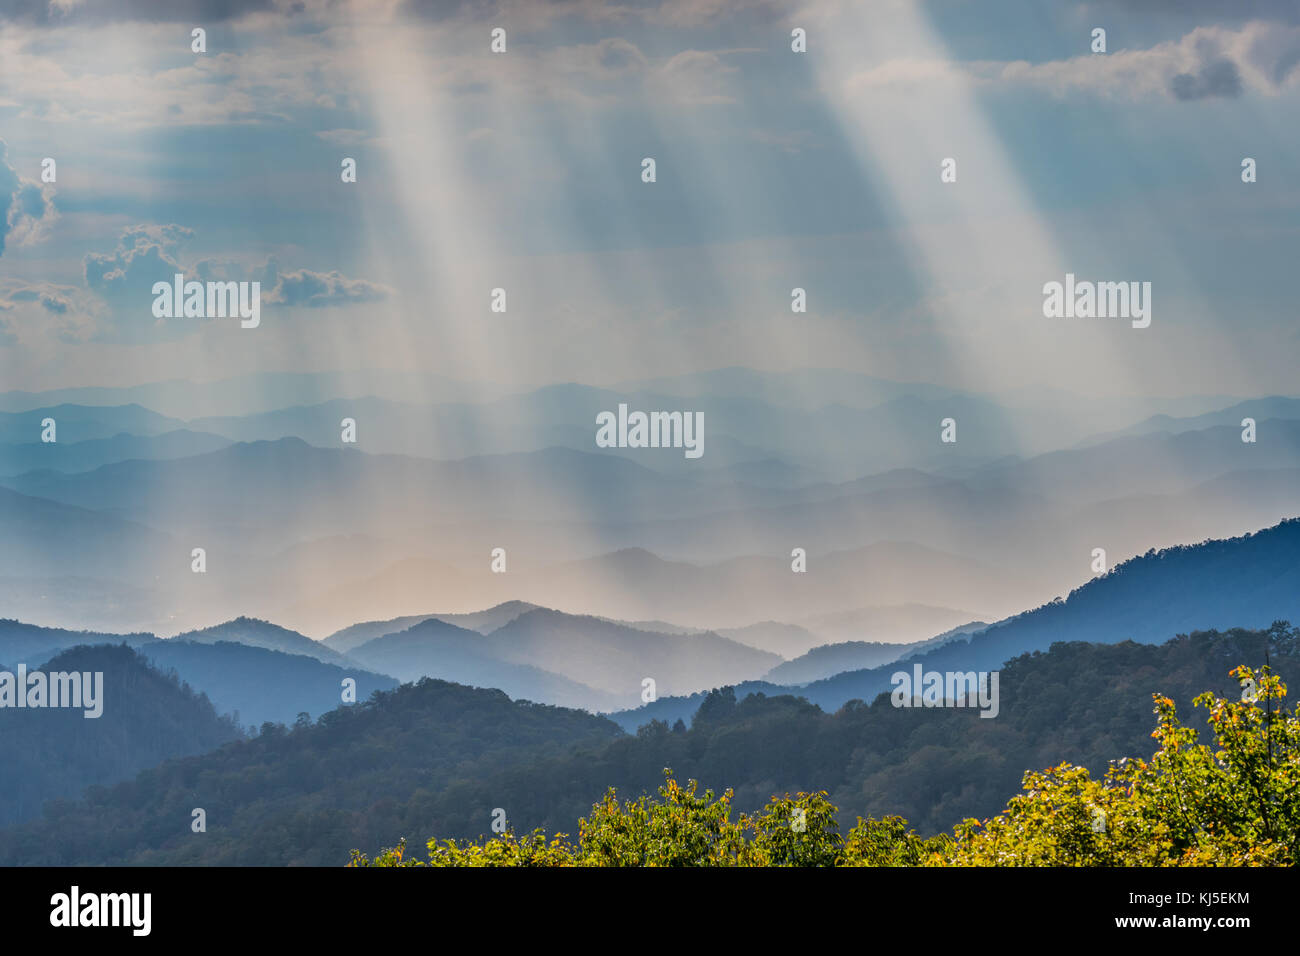 Rays of Sun Shine Over the Blue Ridge Mountains in North Carolina - Stock Image